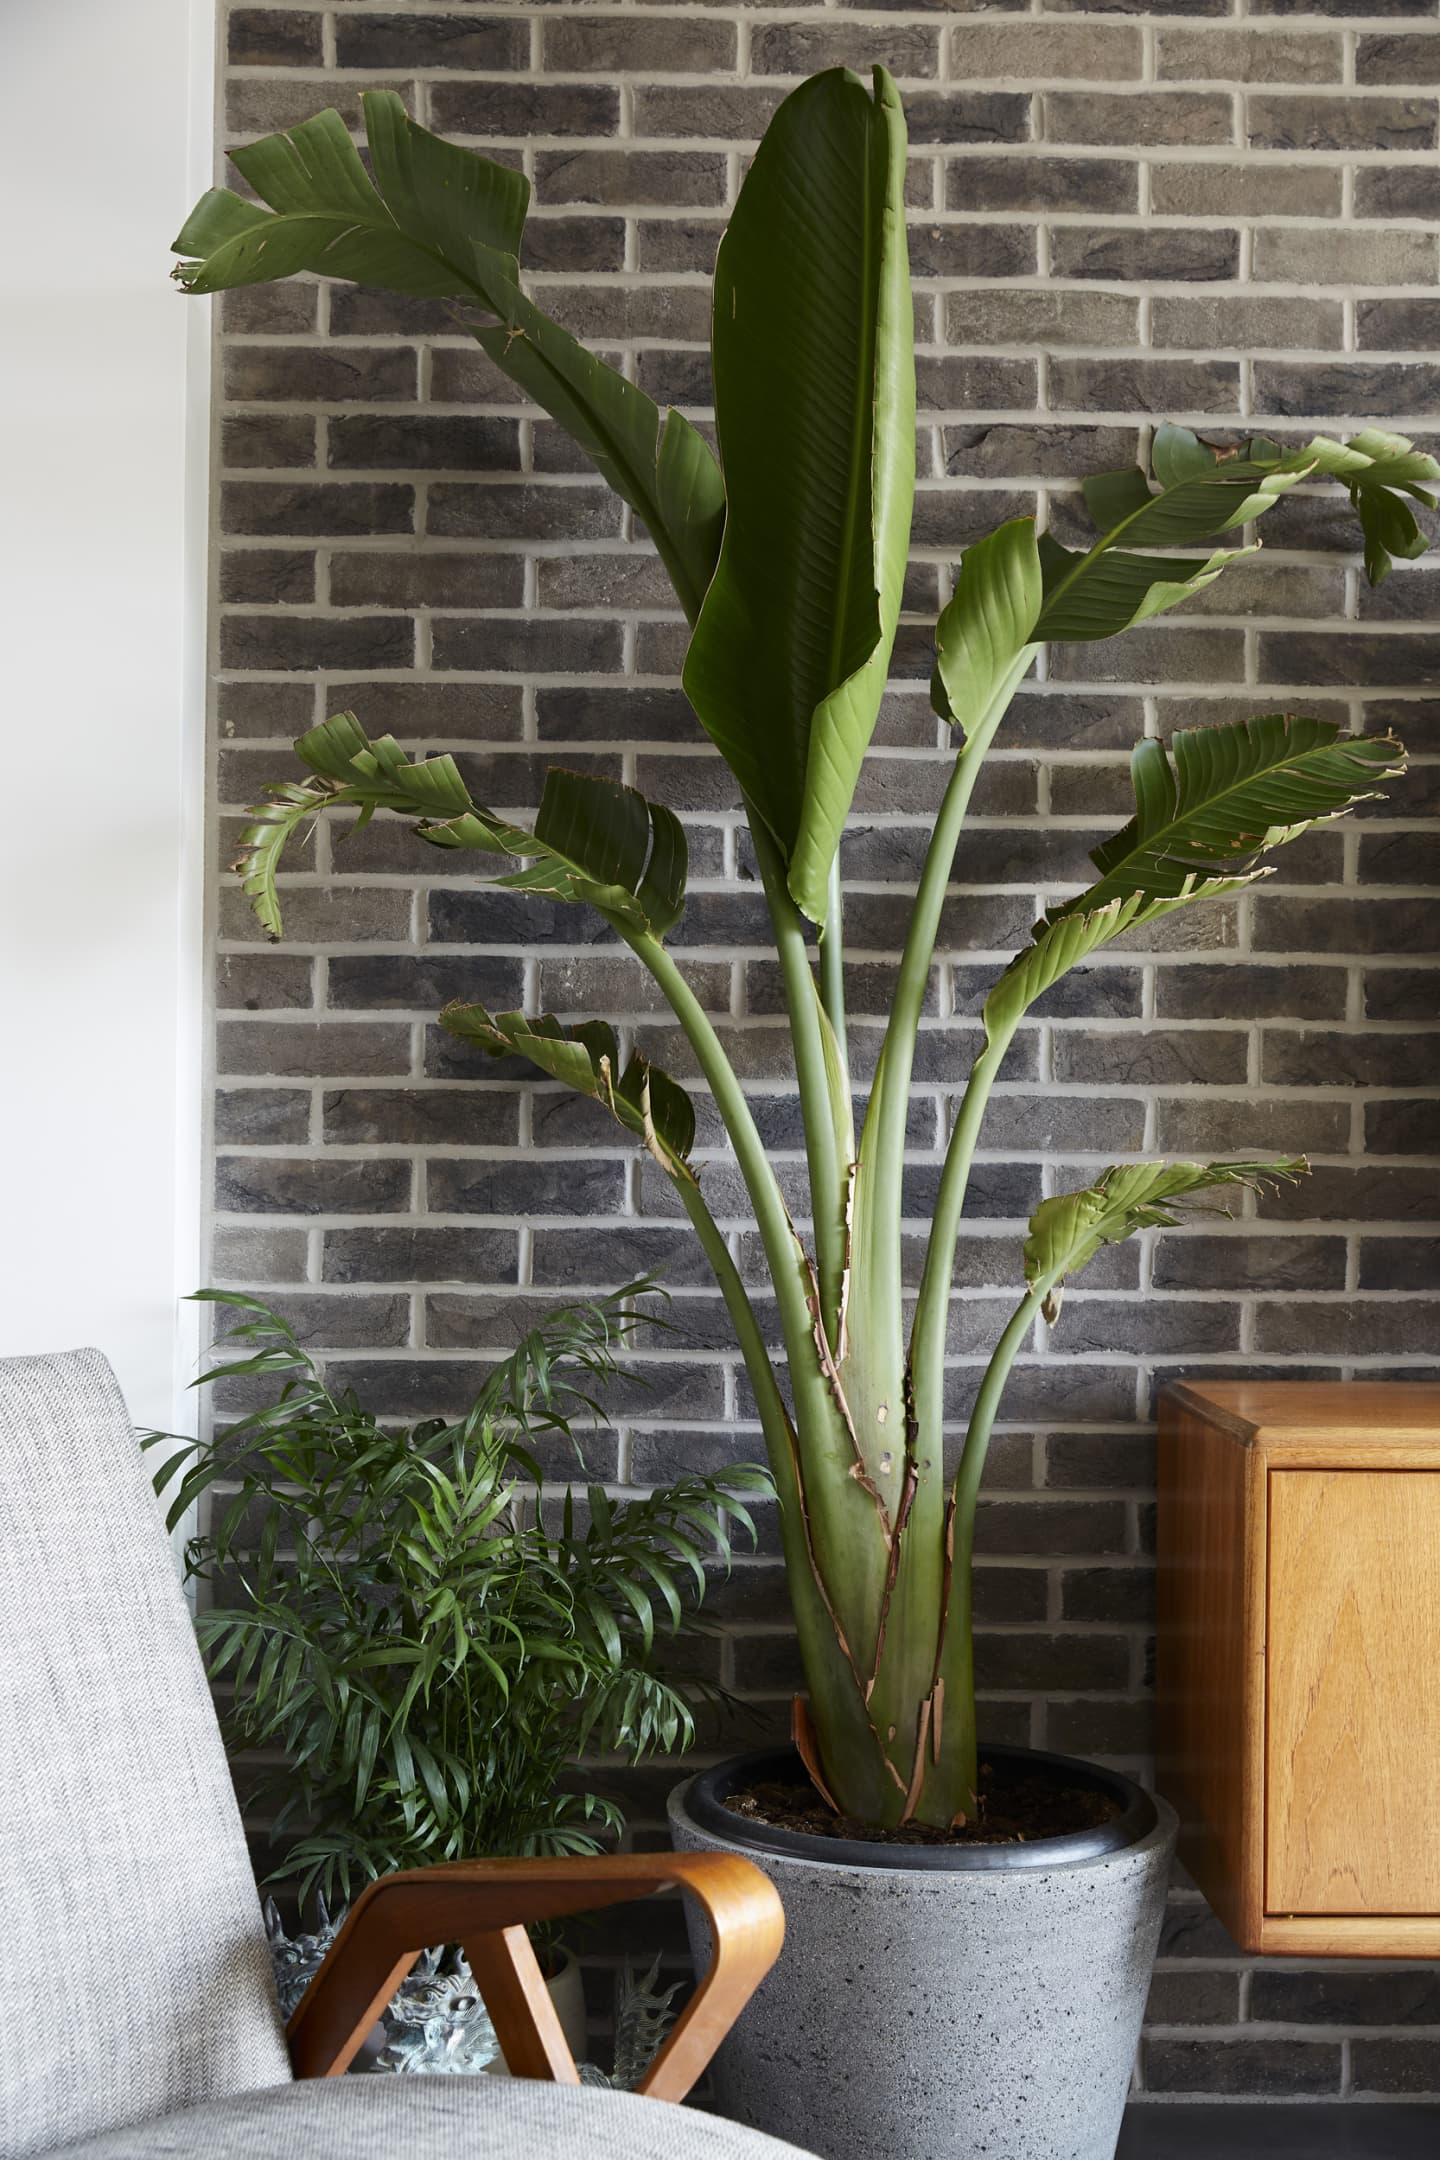 plant in front of brick wall